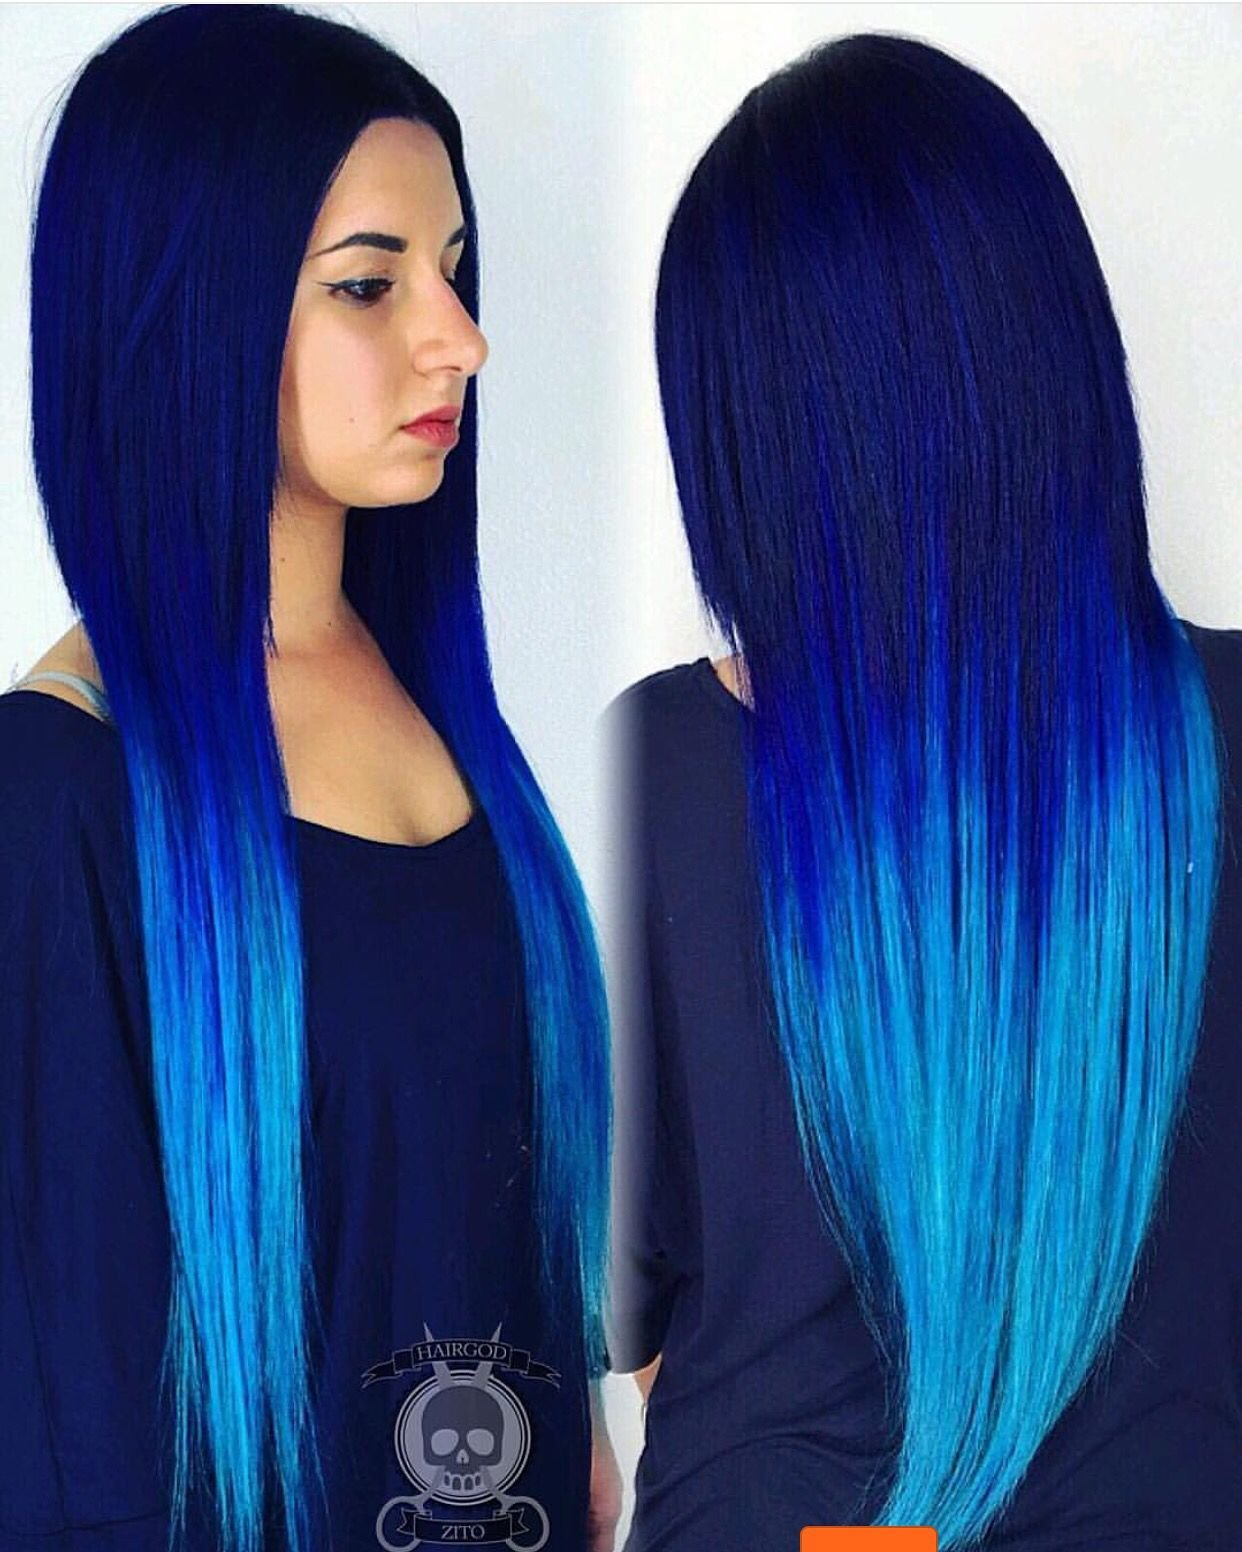 The Best Da Blues By Hairgod Zito This Electric Blue Hair Color Pictures